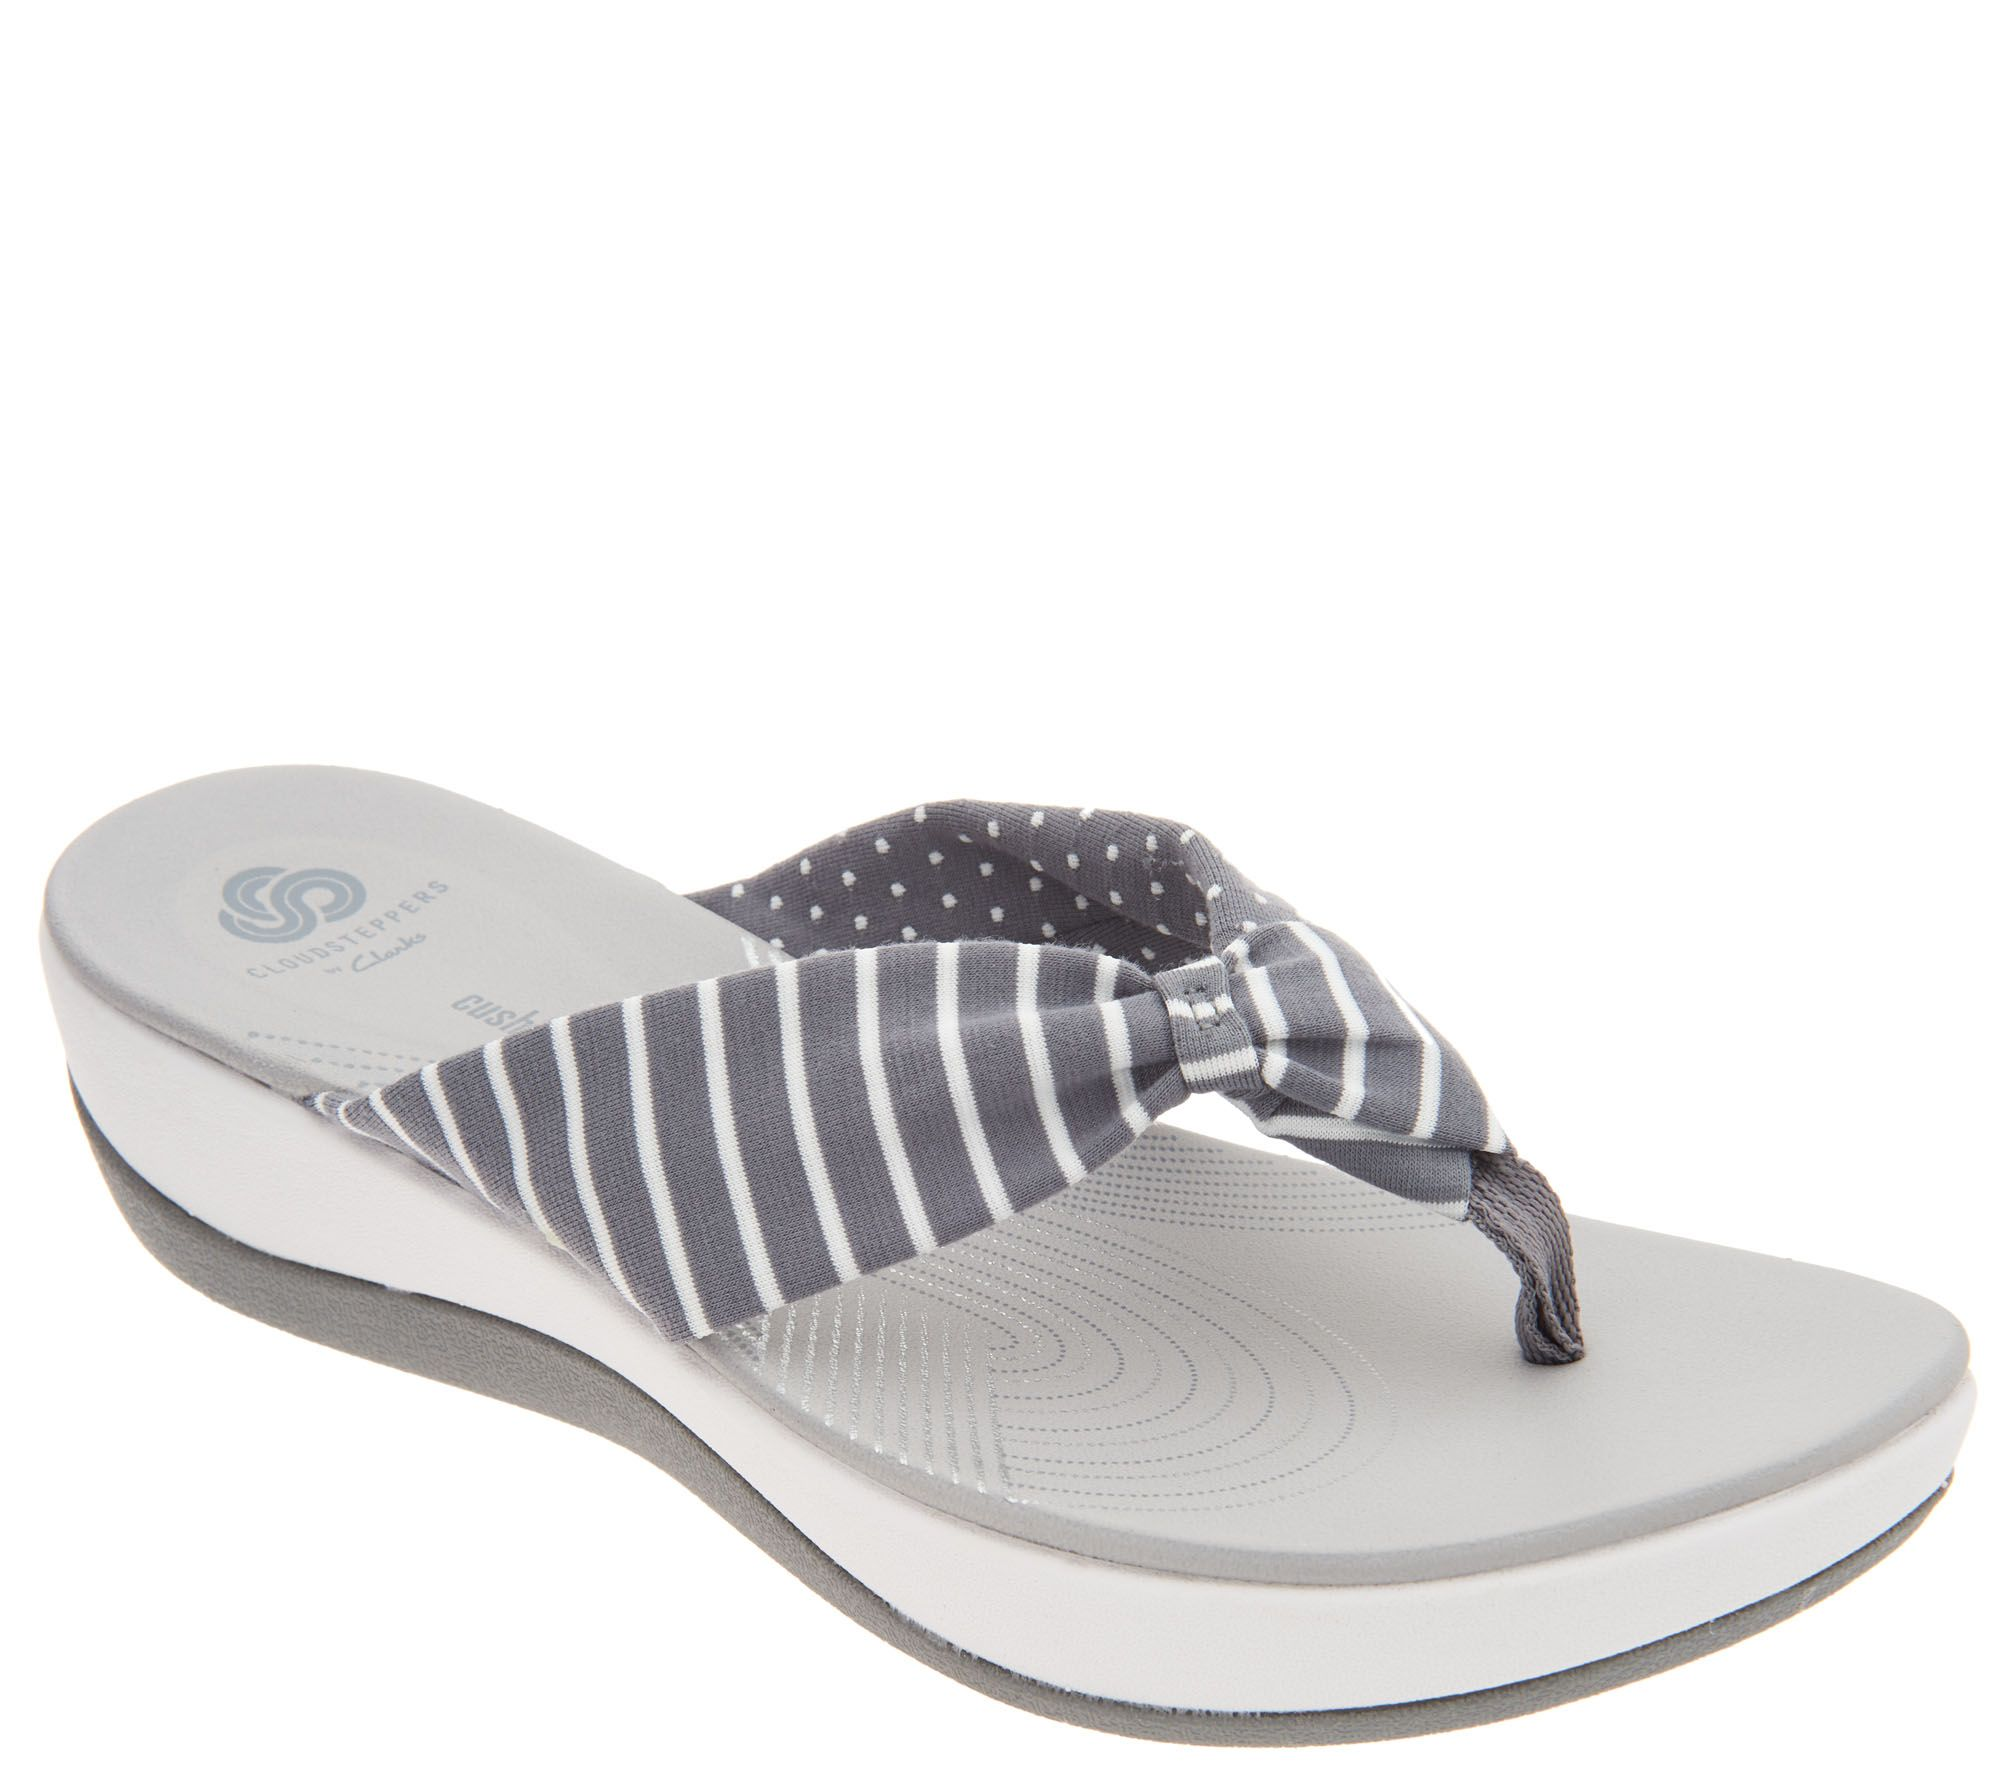 84e48958ef85 CLOUDSTEPPERS by Clarks Printed Thong Sandals - Arla Gilson - Page 1 —  QVC.com